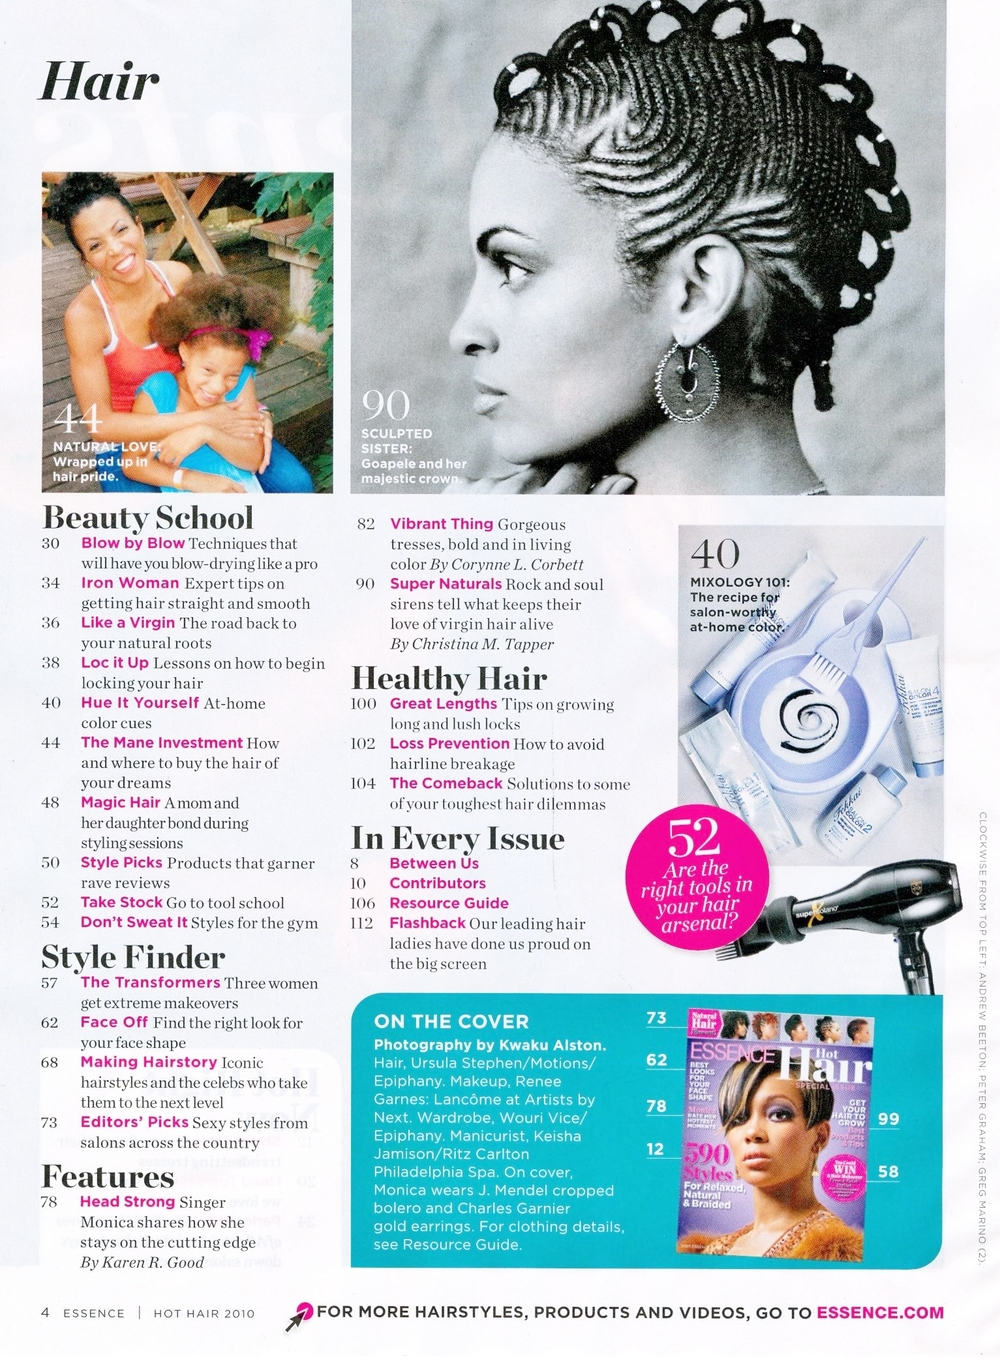 ESSENCE HAIR MAGAZINE